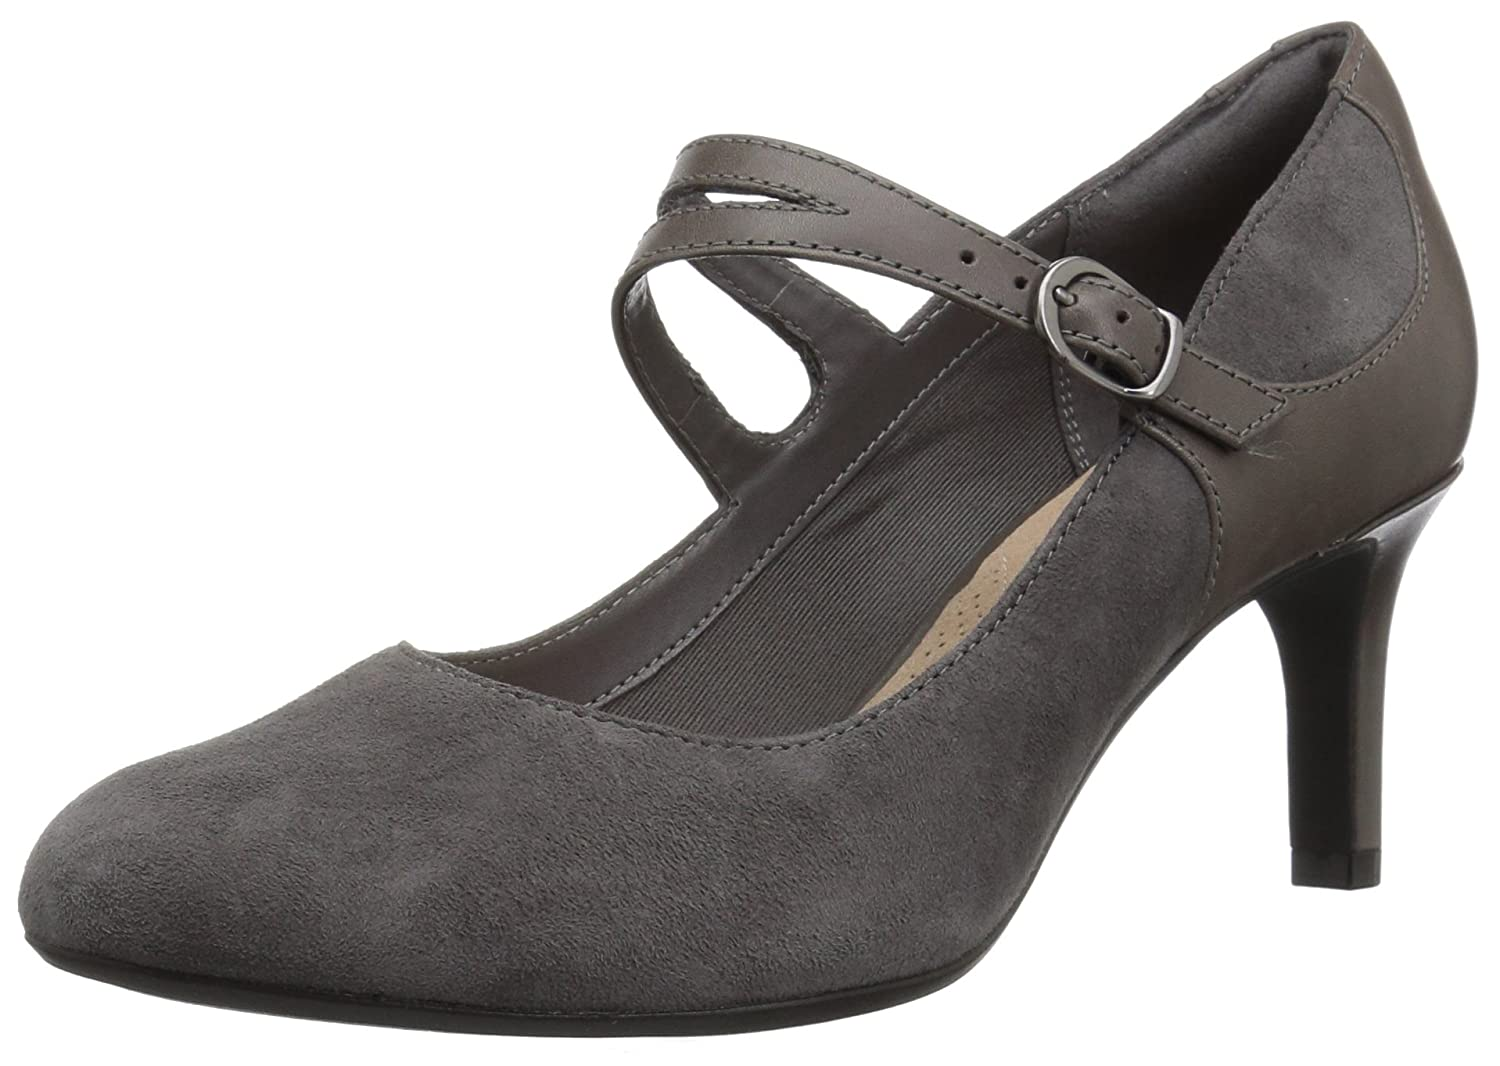 Grey Suede Clarks Women's Dancer Reece Stiletto